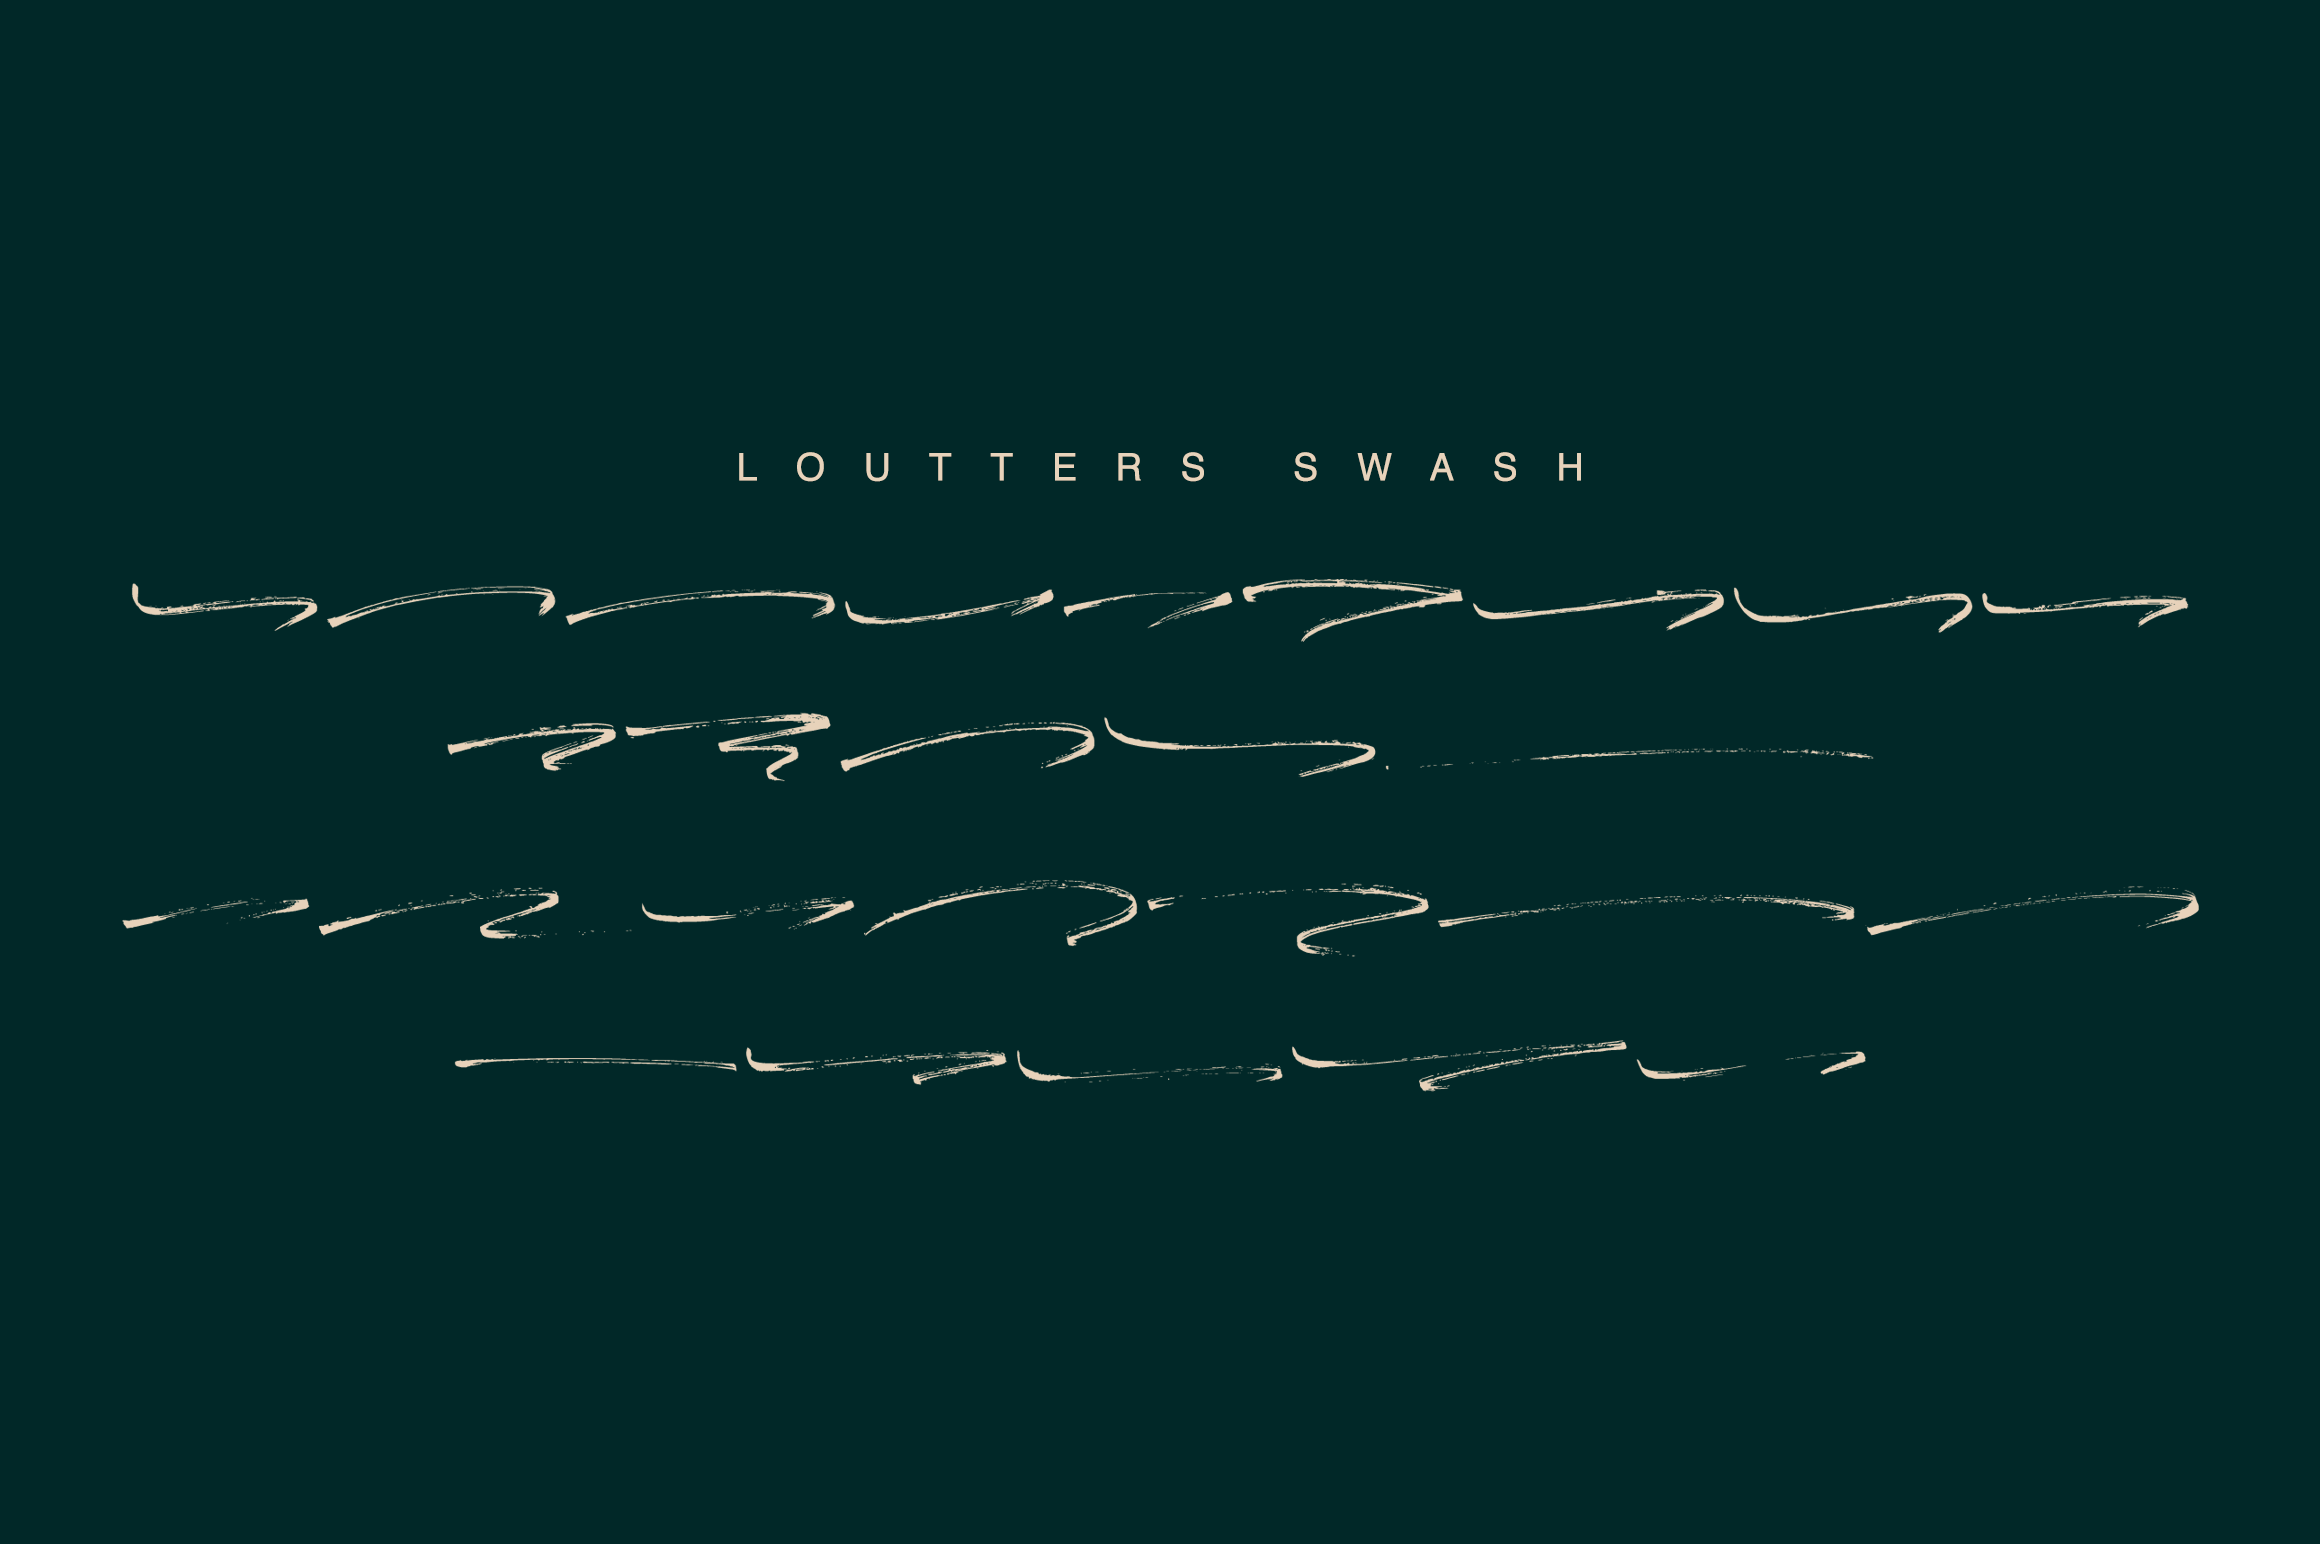 Loutters | Handwritten Brush Font example image 12